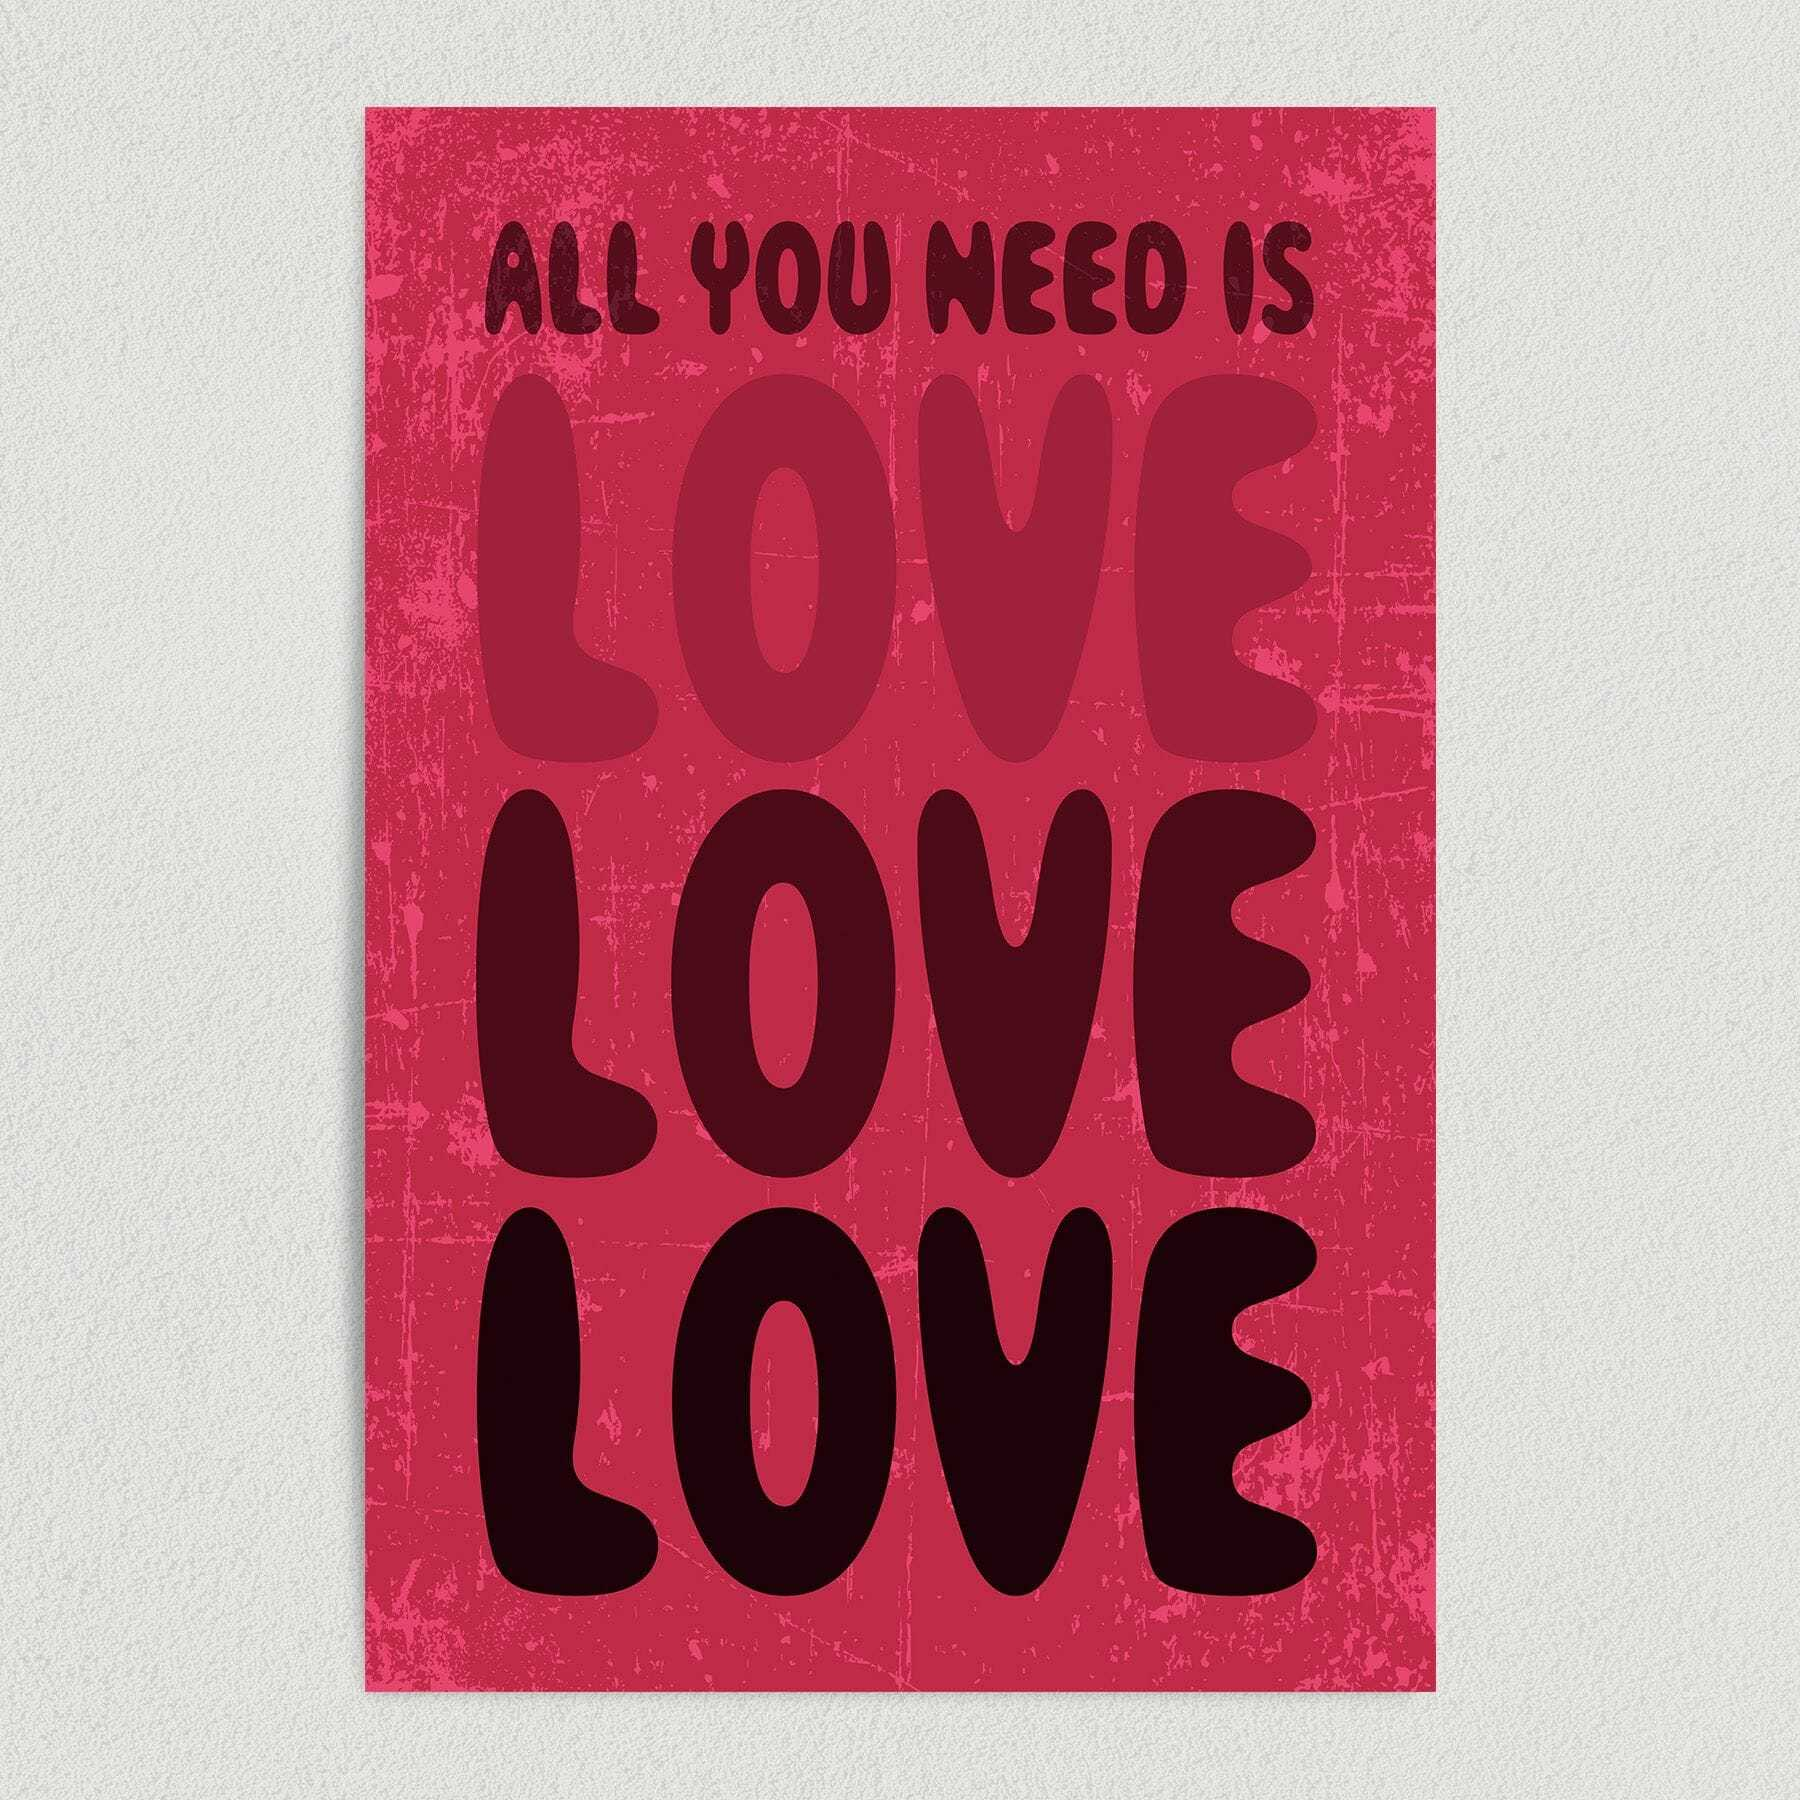 All You Need Is Love The Beatles Famous Lyrics Art Print Poster H1010